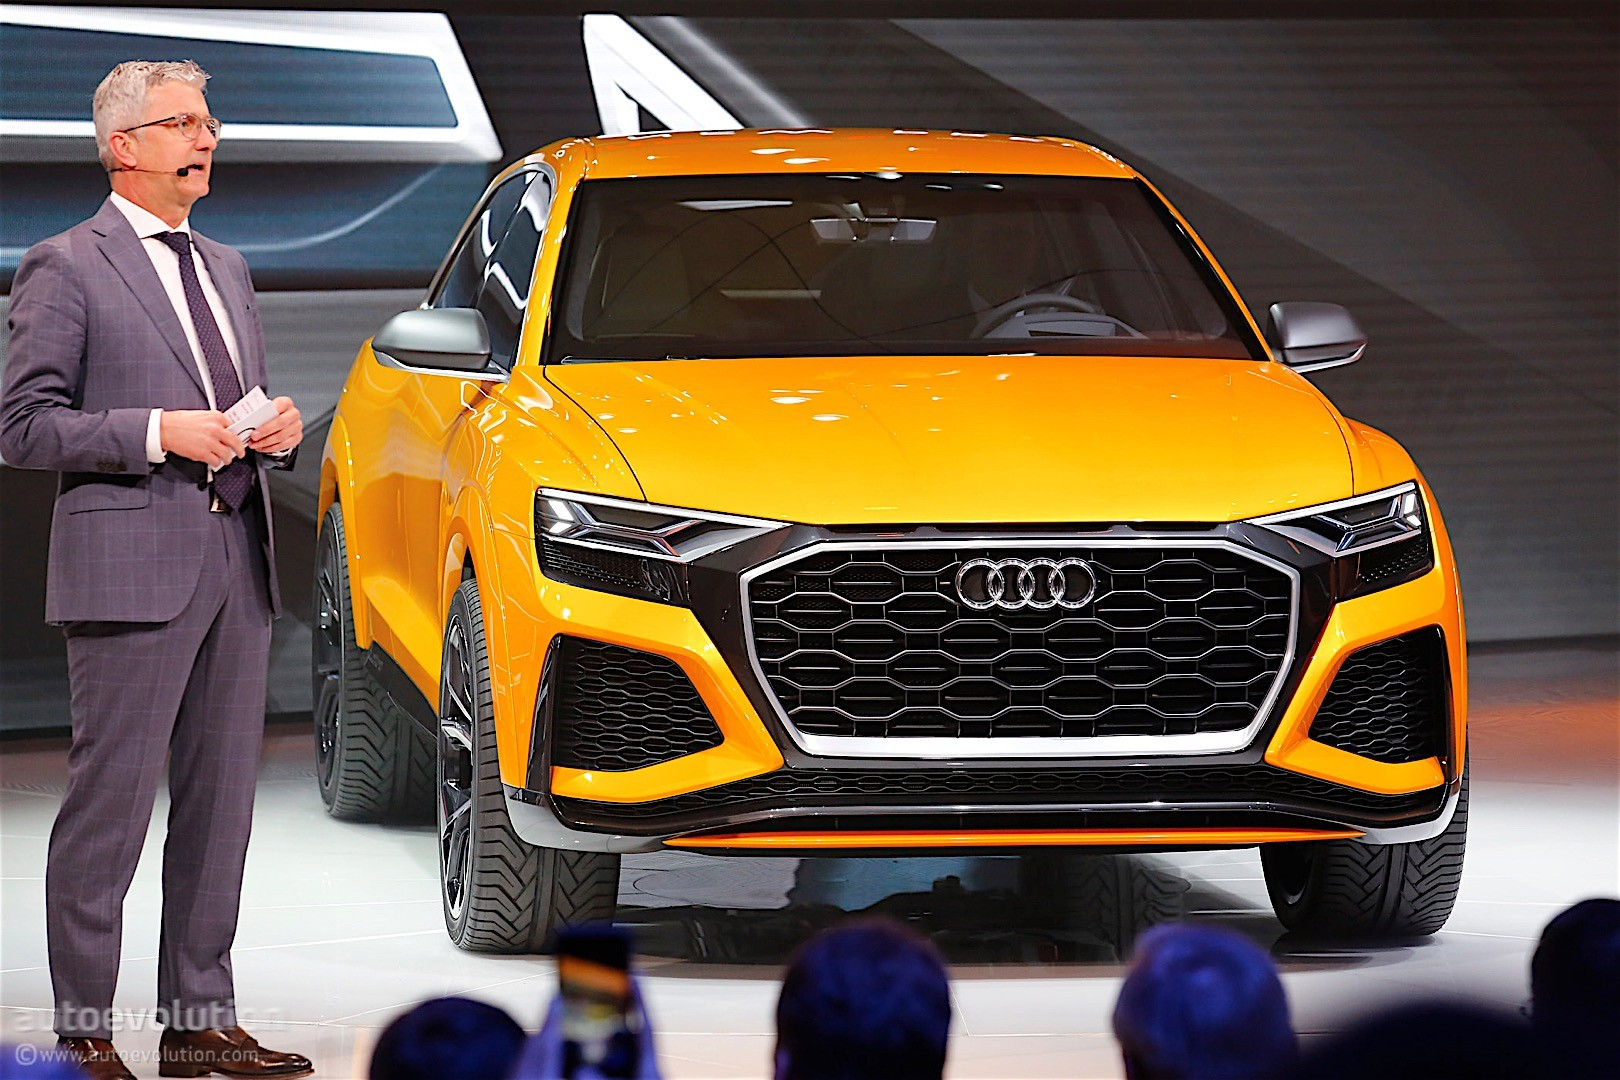 Audi Q7 >> Audi Q8 Halo SUV Model Confirmed: Q7 Platform and Prologue Concept Design - autoevolution